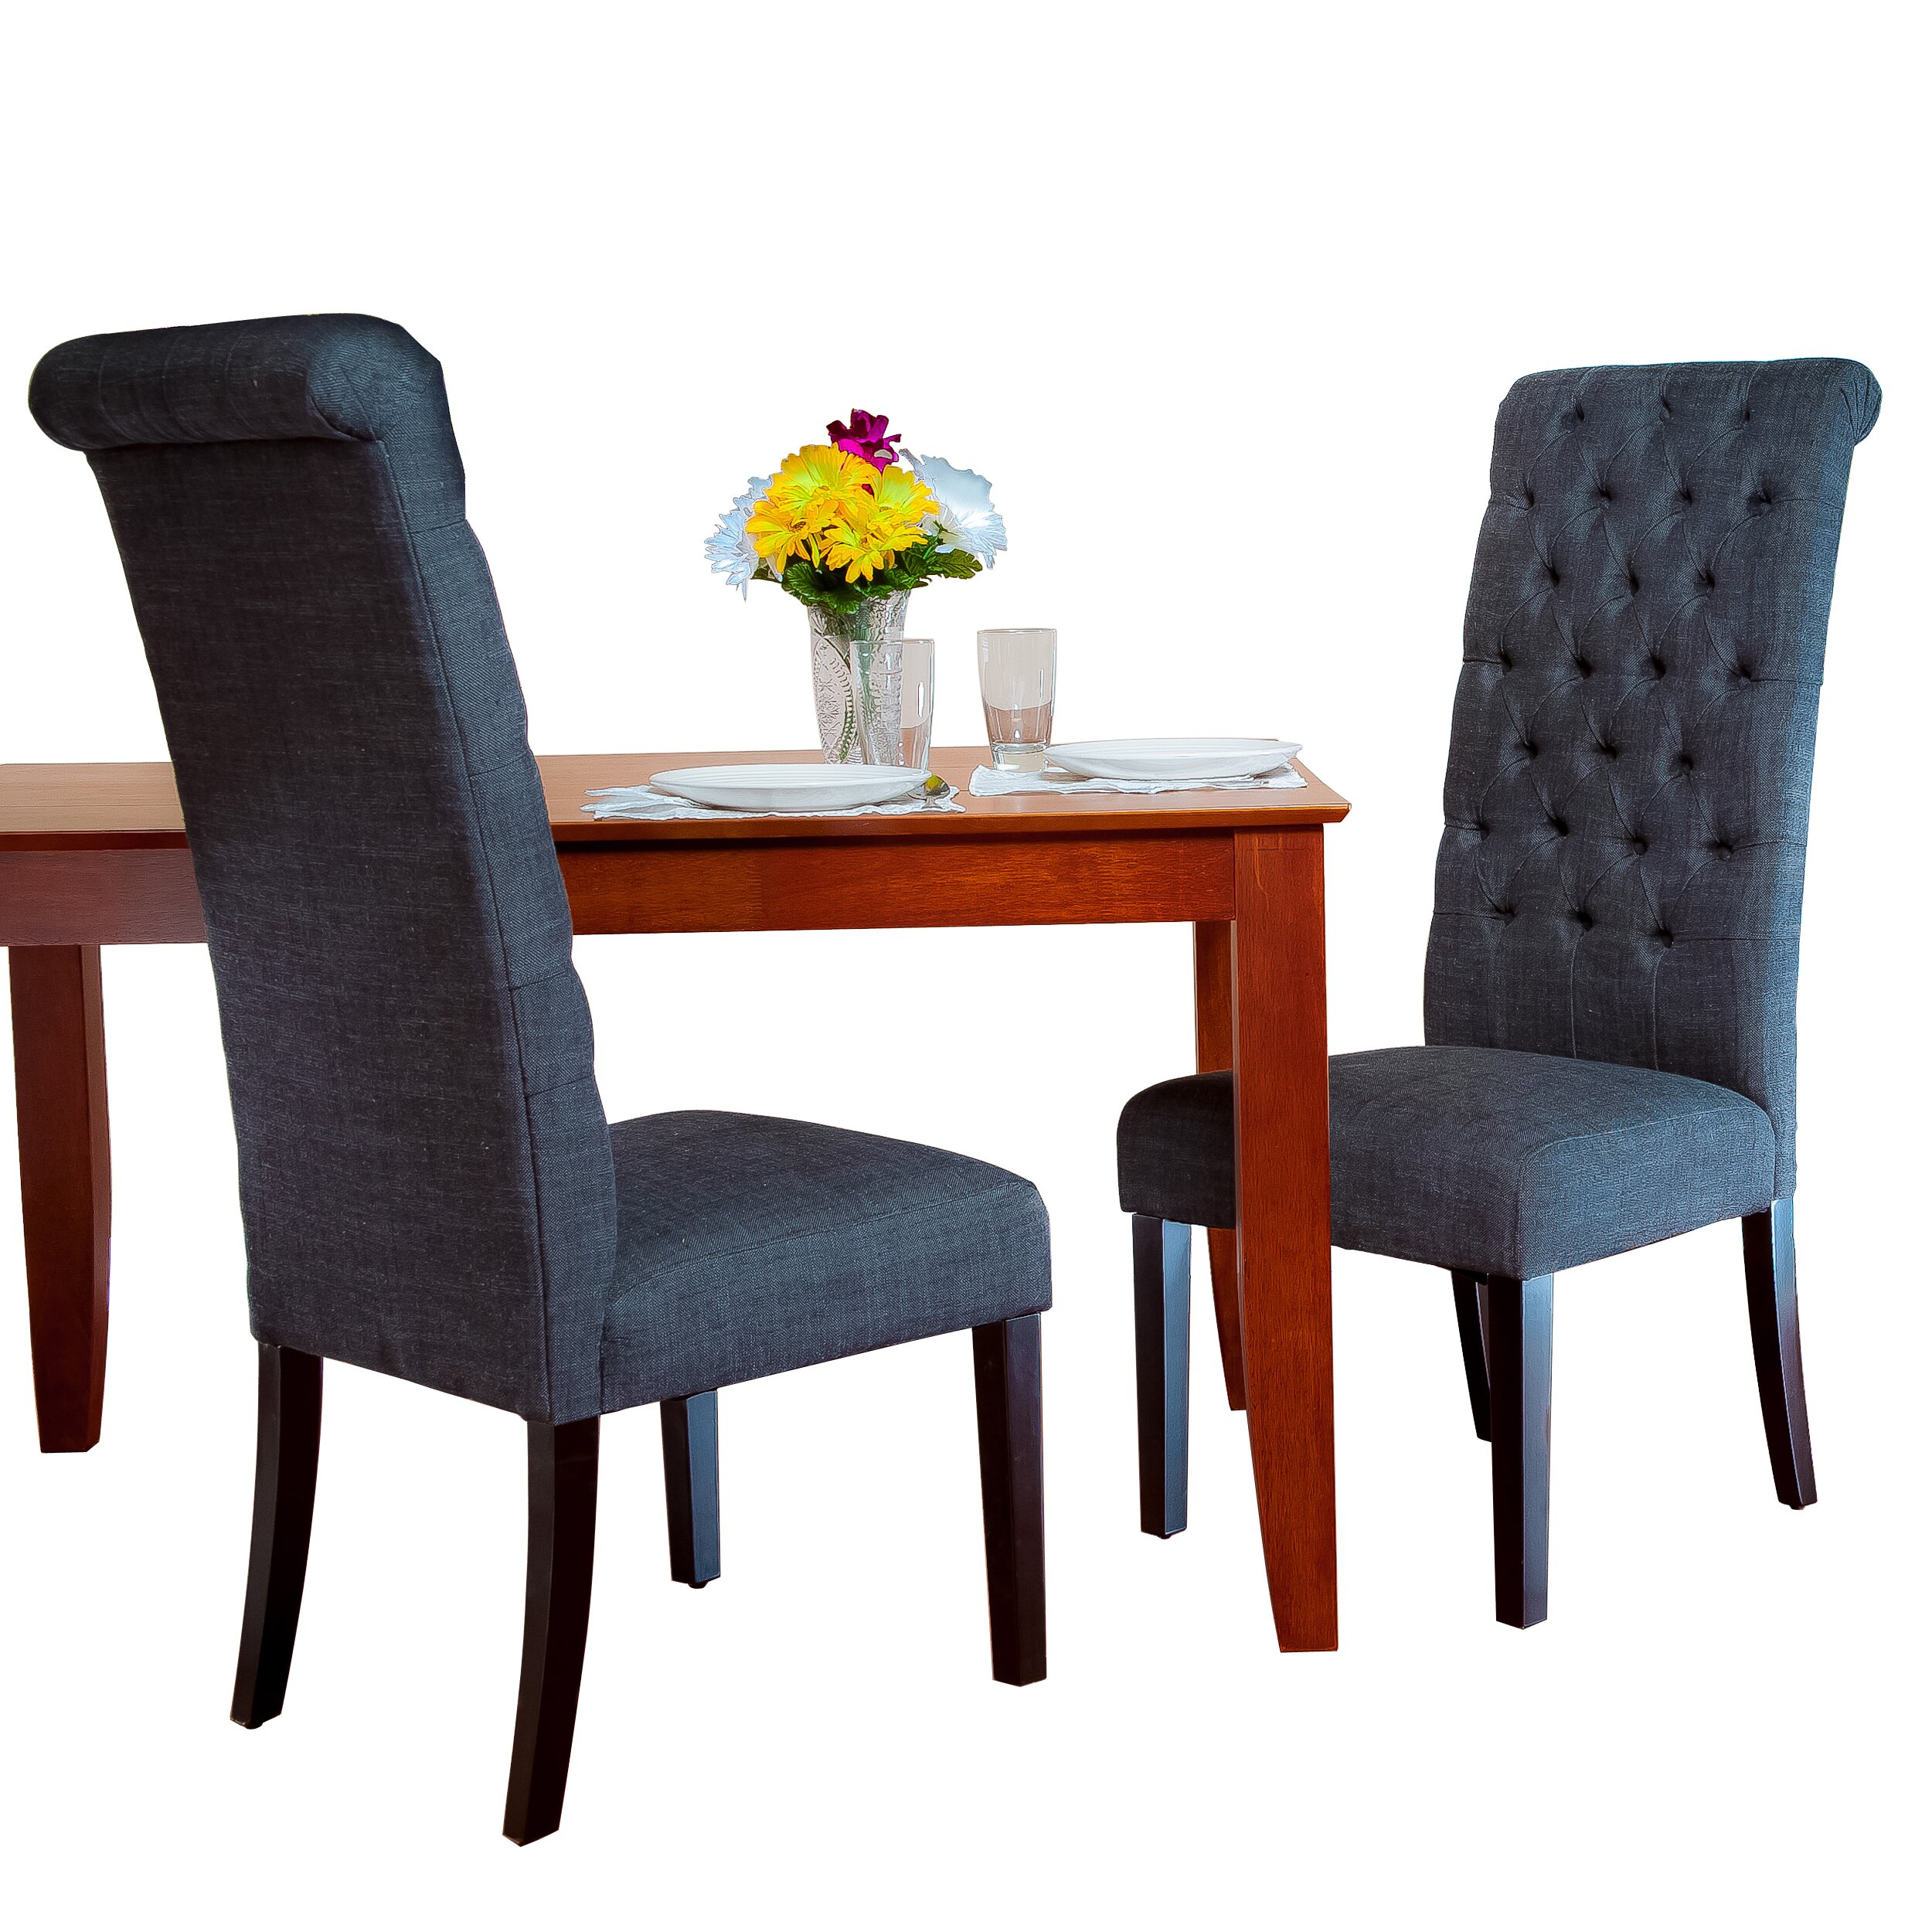 Charlton home estbury tall tufted upholstered dining chair for Tufted dining chairs for sale